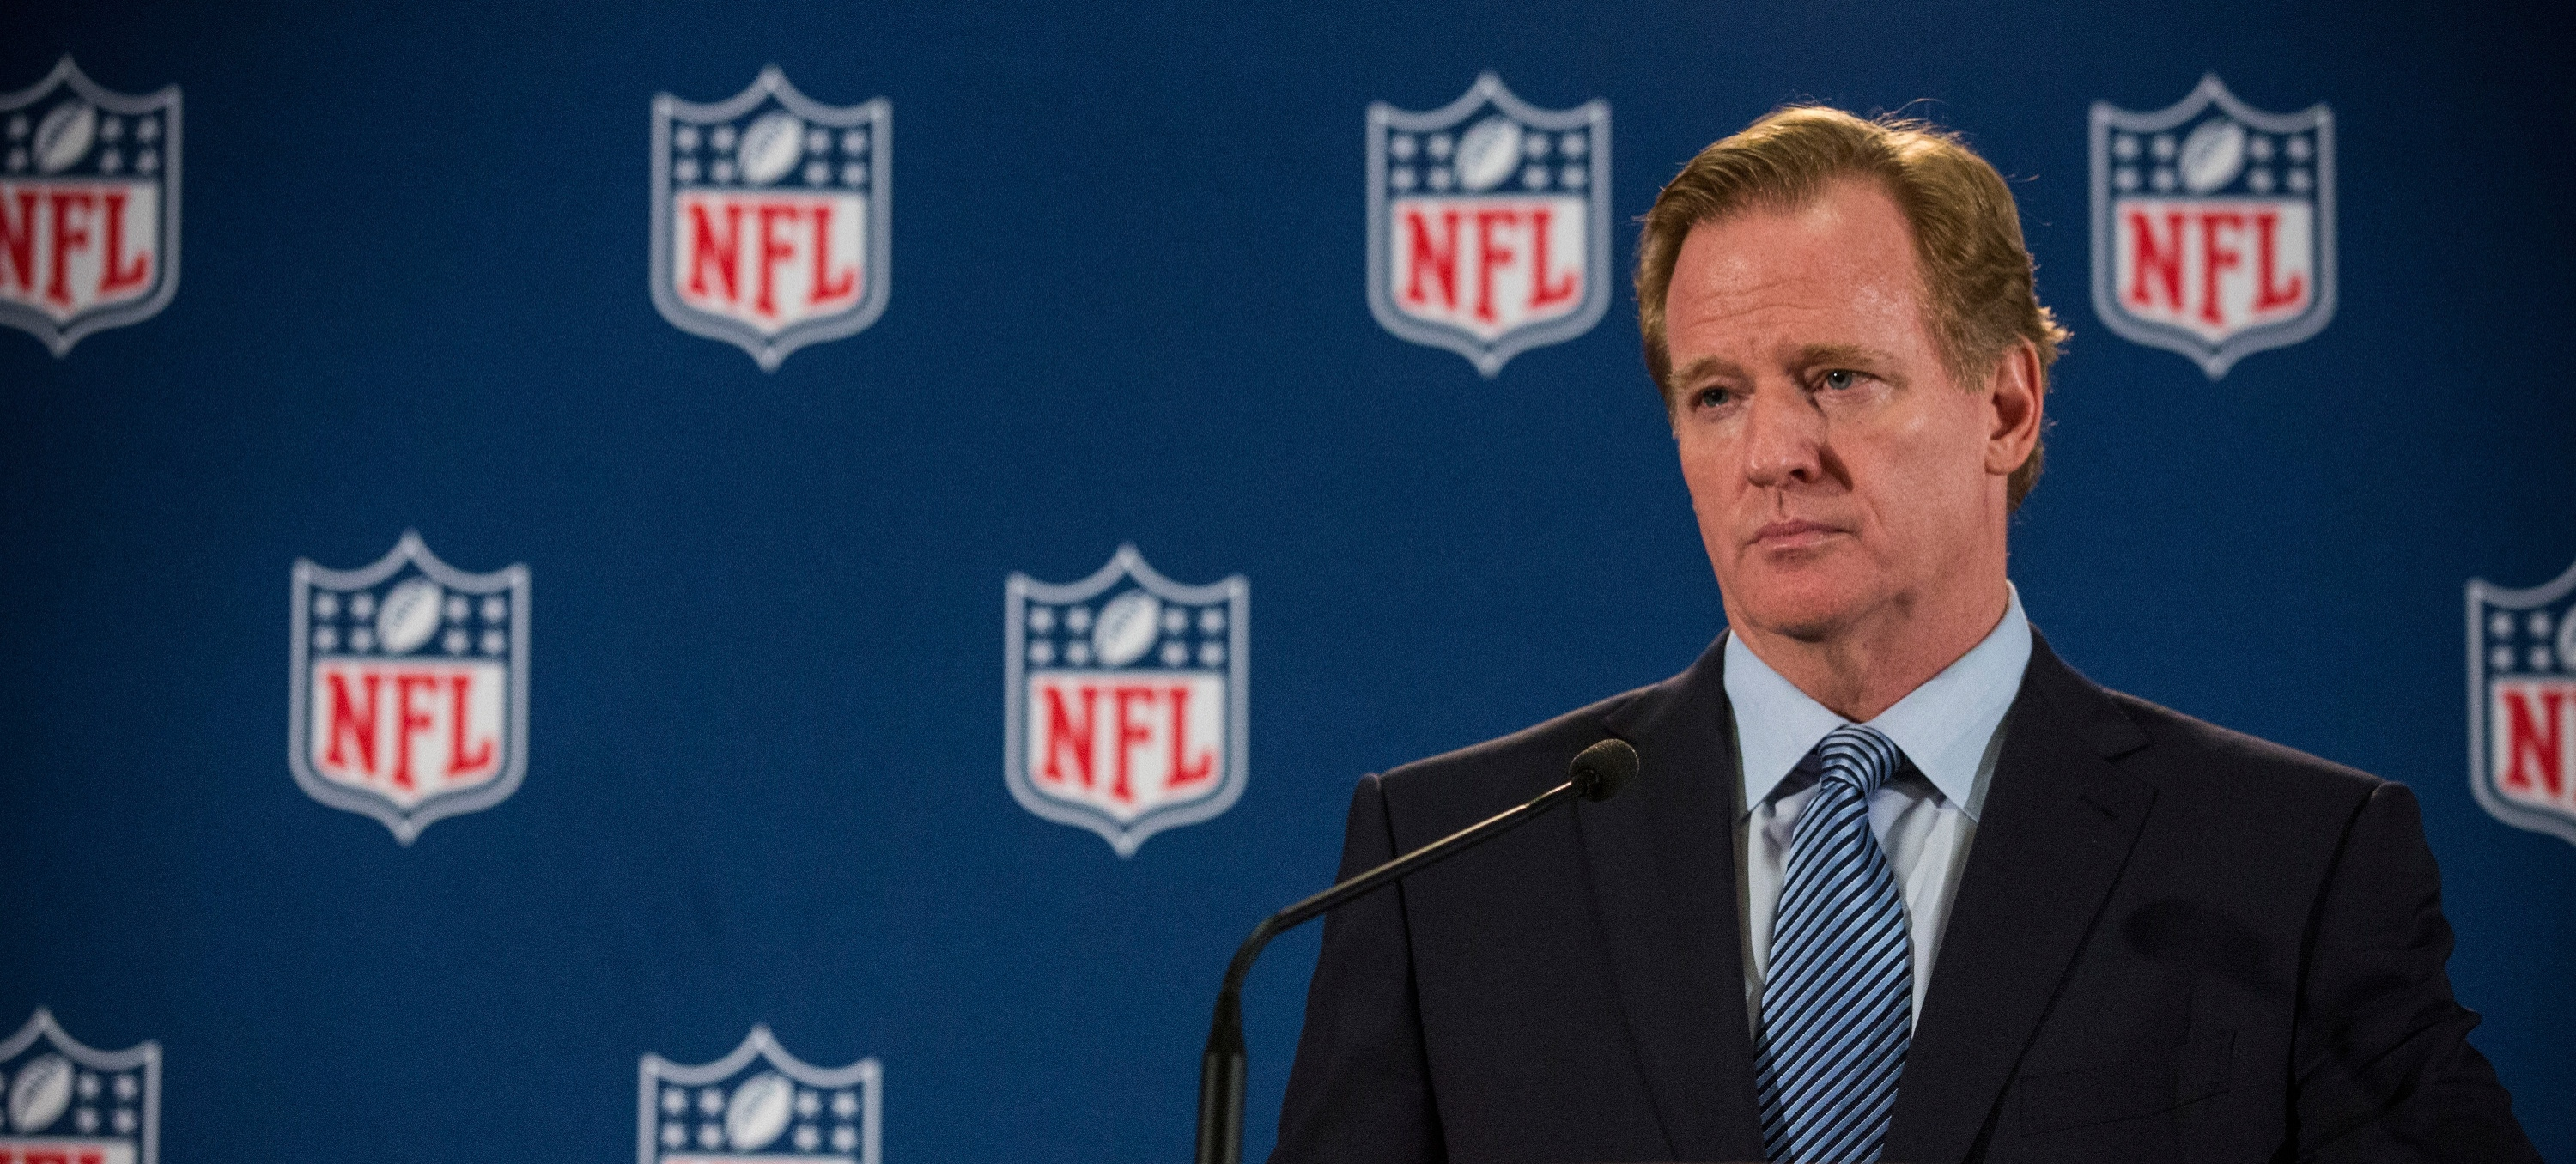 NEW YORK, NY - OCTOBER 08: NFL Commissioner Roger Goodell holds a press conference on October 8, 2014 in New York City. Goodell addressed the media at the conclusion of the annual Fall league meeting in the wake of a string of high-profile incidents, including the domestic violence case of Ray Rice. (Photo by Andrew Burton/Getty Images)